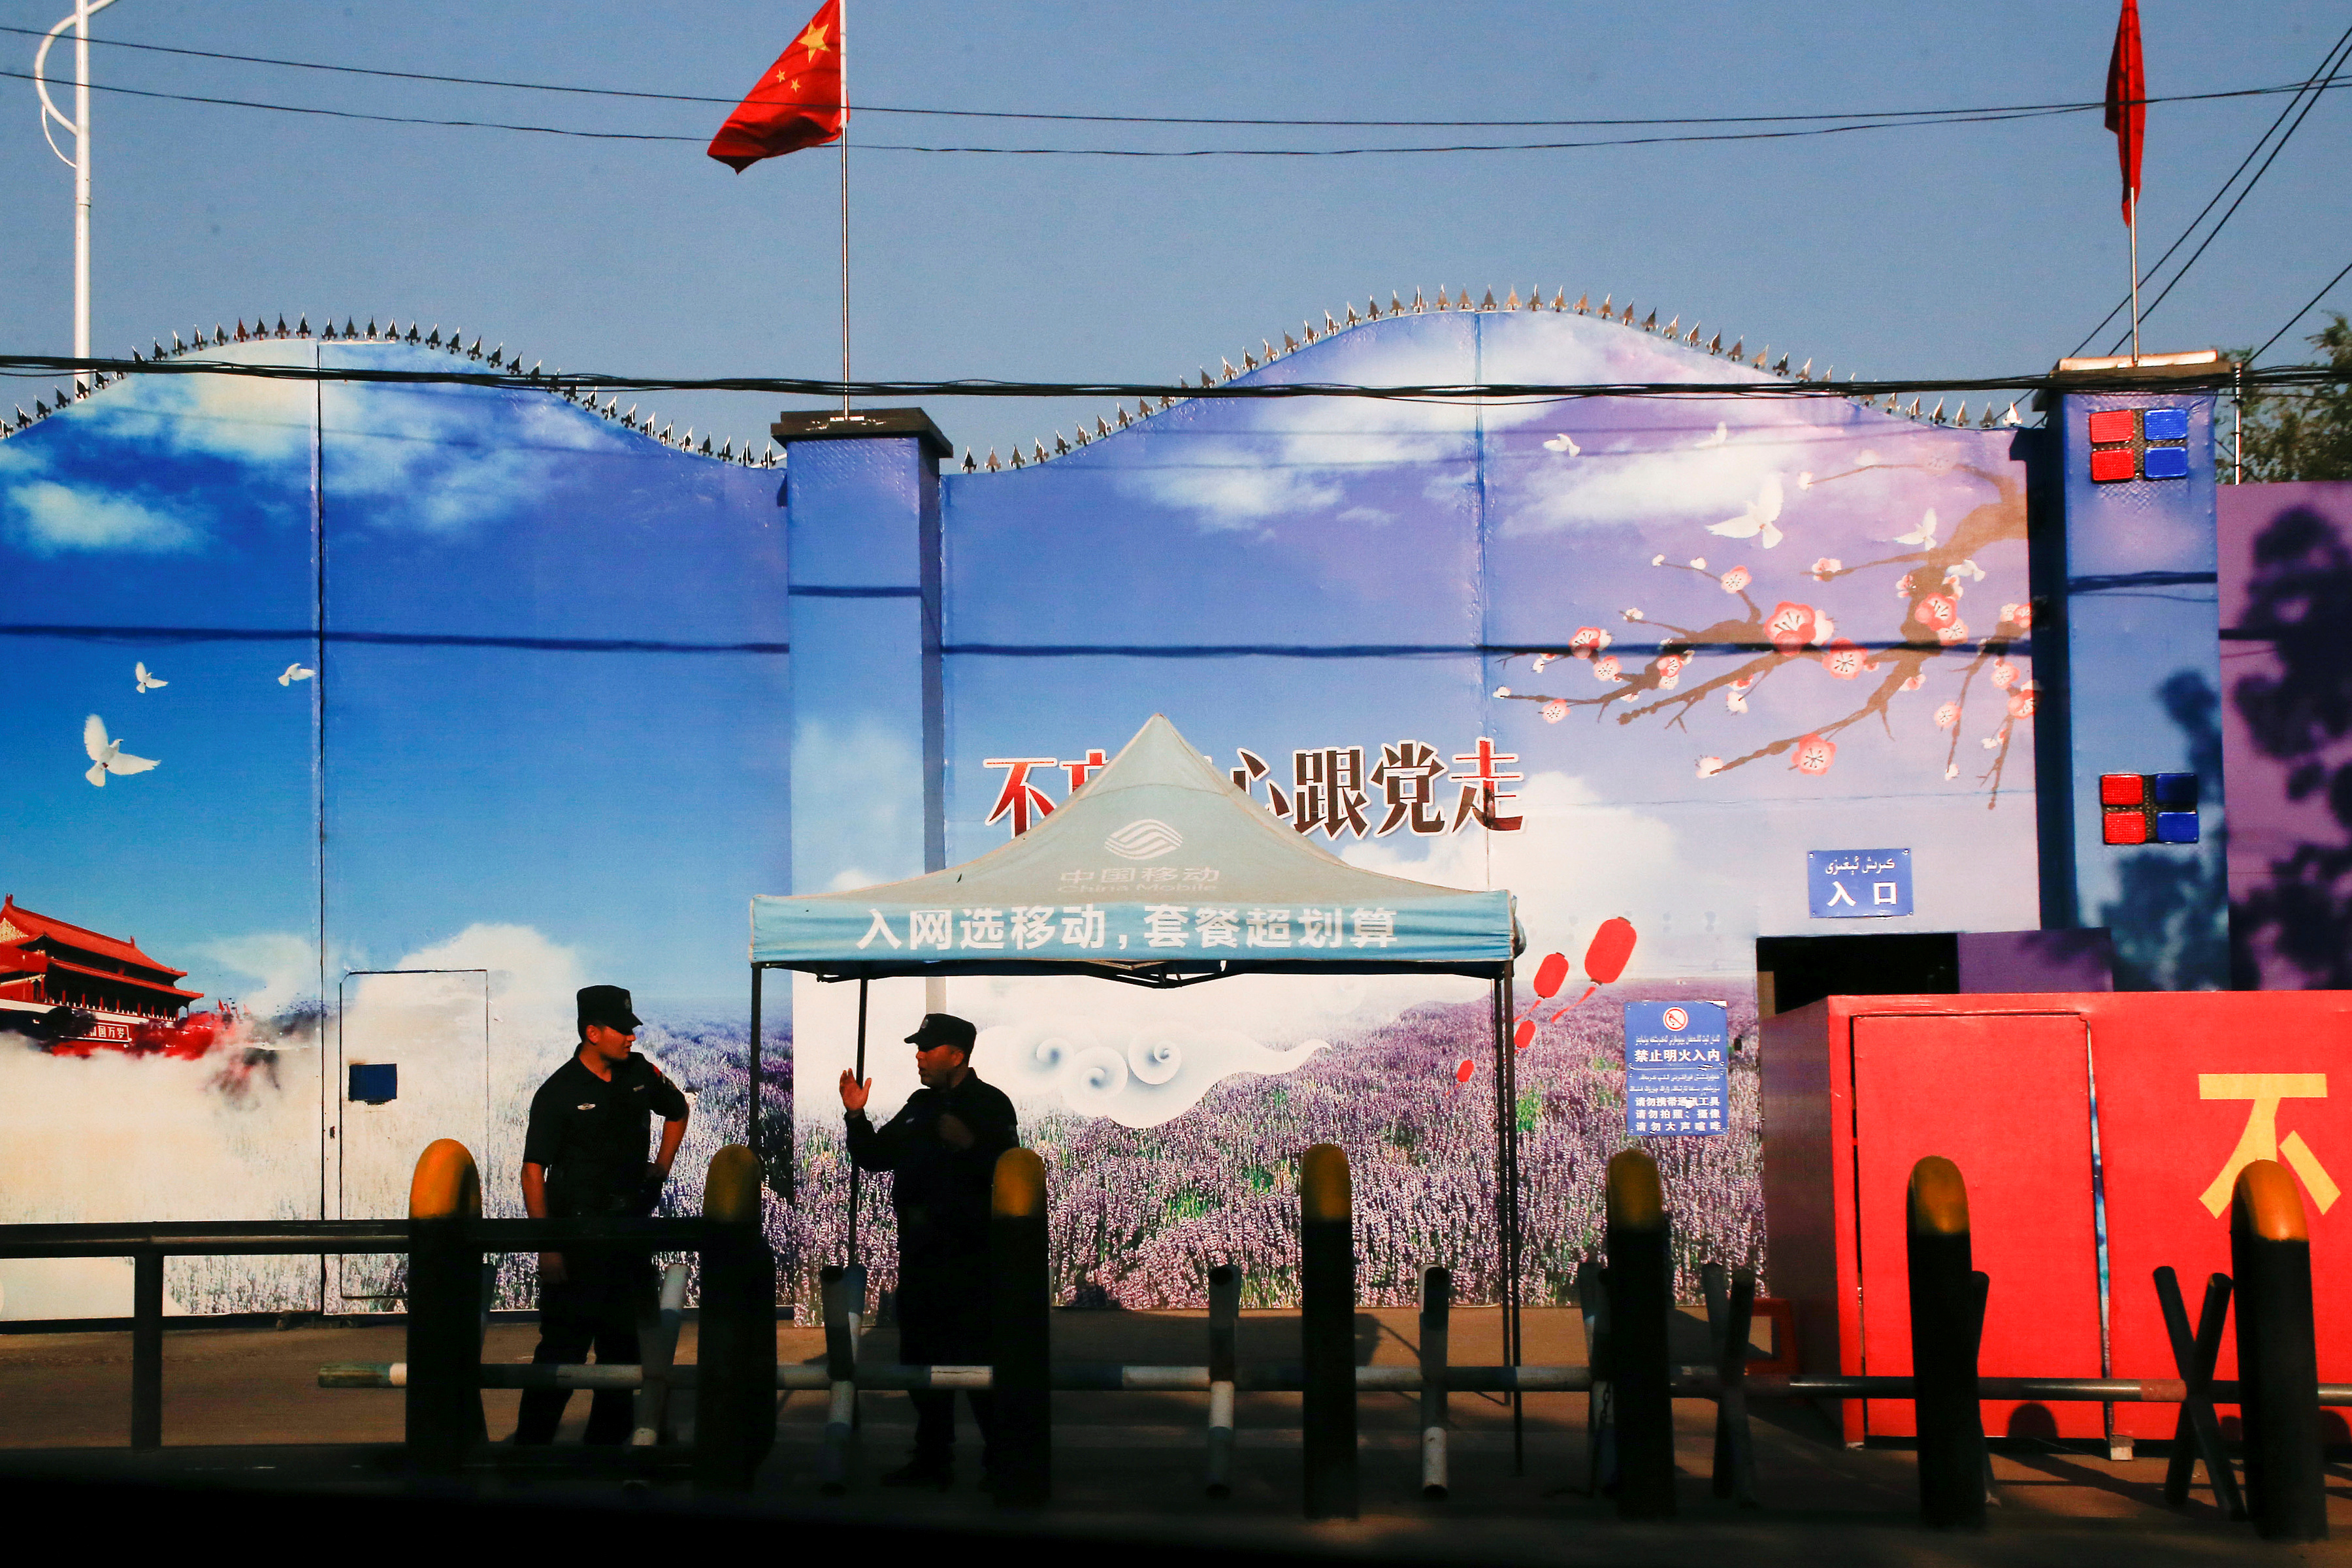 Security guards stand at the gates of what is officially known as a vocational skills education centre in Huocheng County in Xinjiang Uighur Autonomous Region, China September 3, 2018. REUTERS/Thomas Peter/File Photo